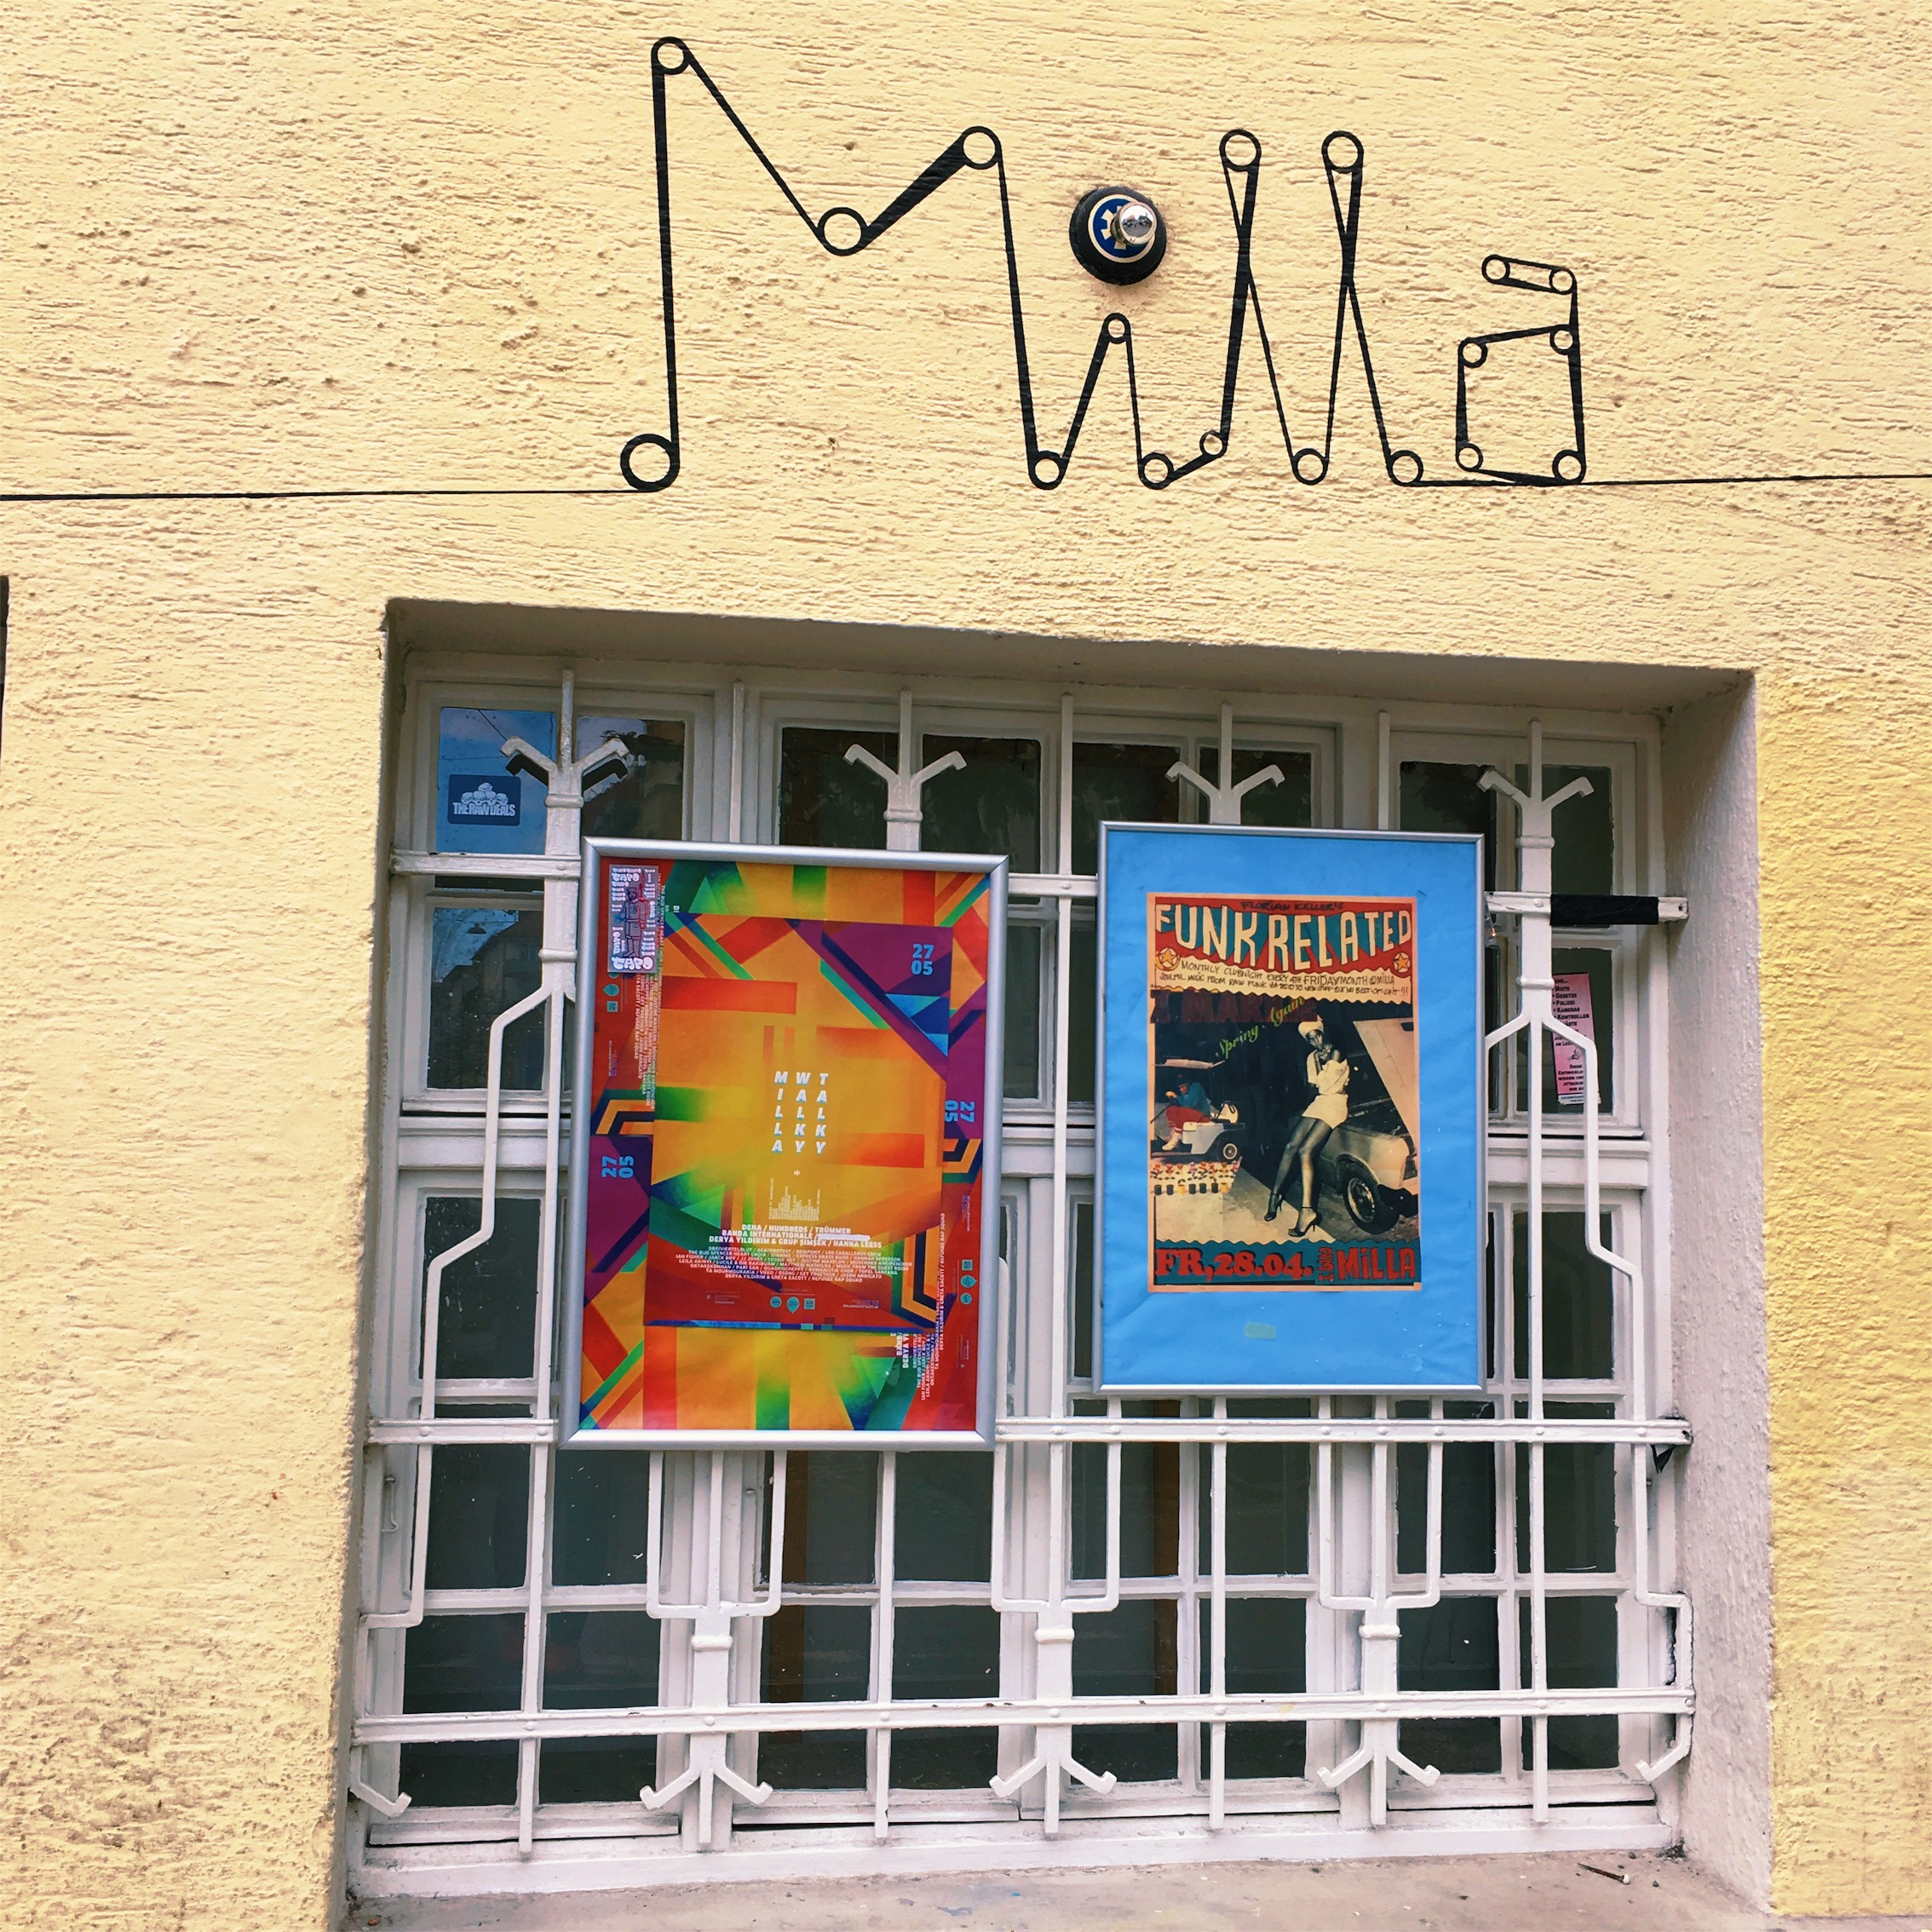 Munich might not have Berlin's edge, but it's still a city packed with culture and places to see live music, like  Milla .